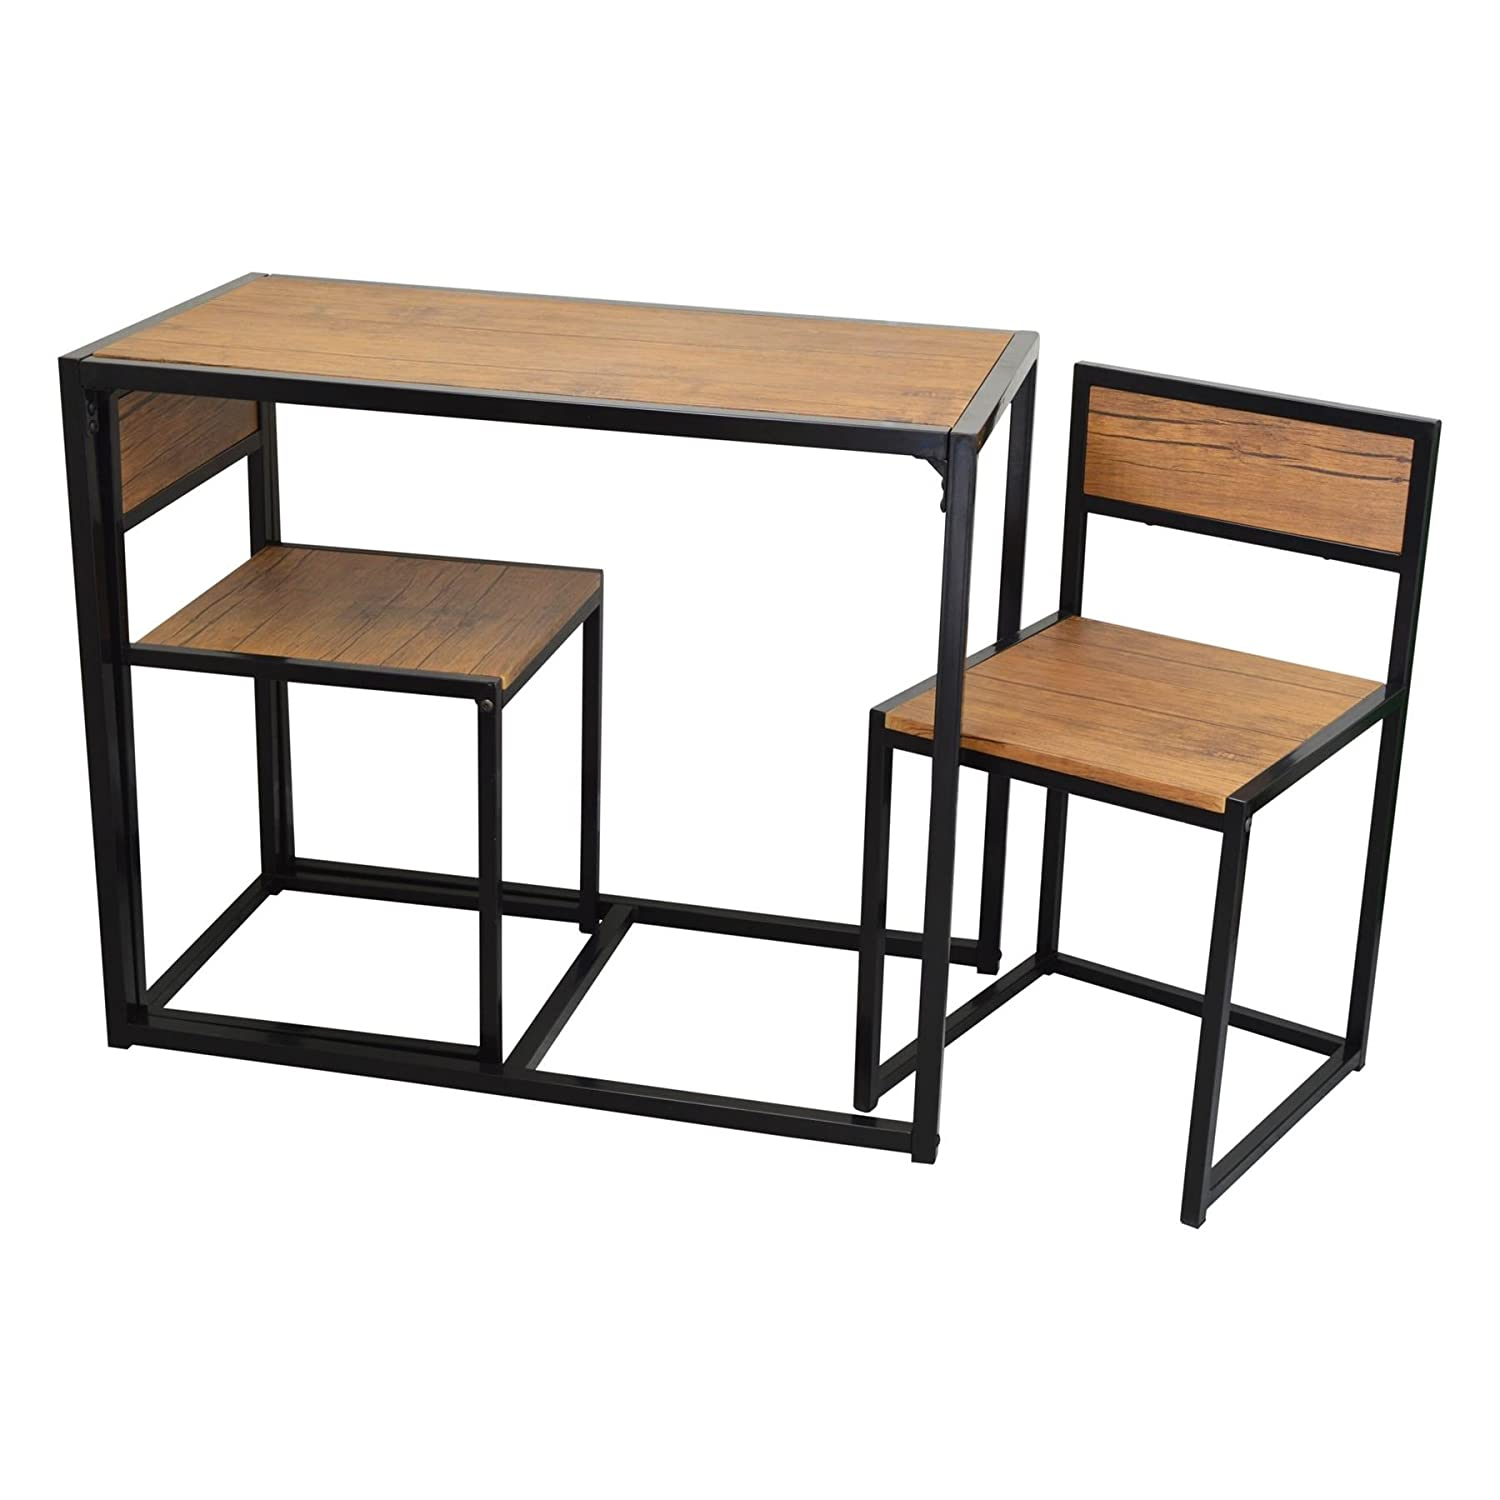 Harbour Housewares 2 Person Space Saving, Compact, Kitchen Dining Table U0026 Chairs  Set: Amazon.co.uk: Kitchen U0026 Home